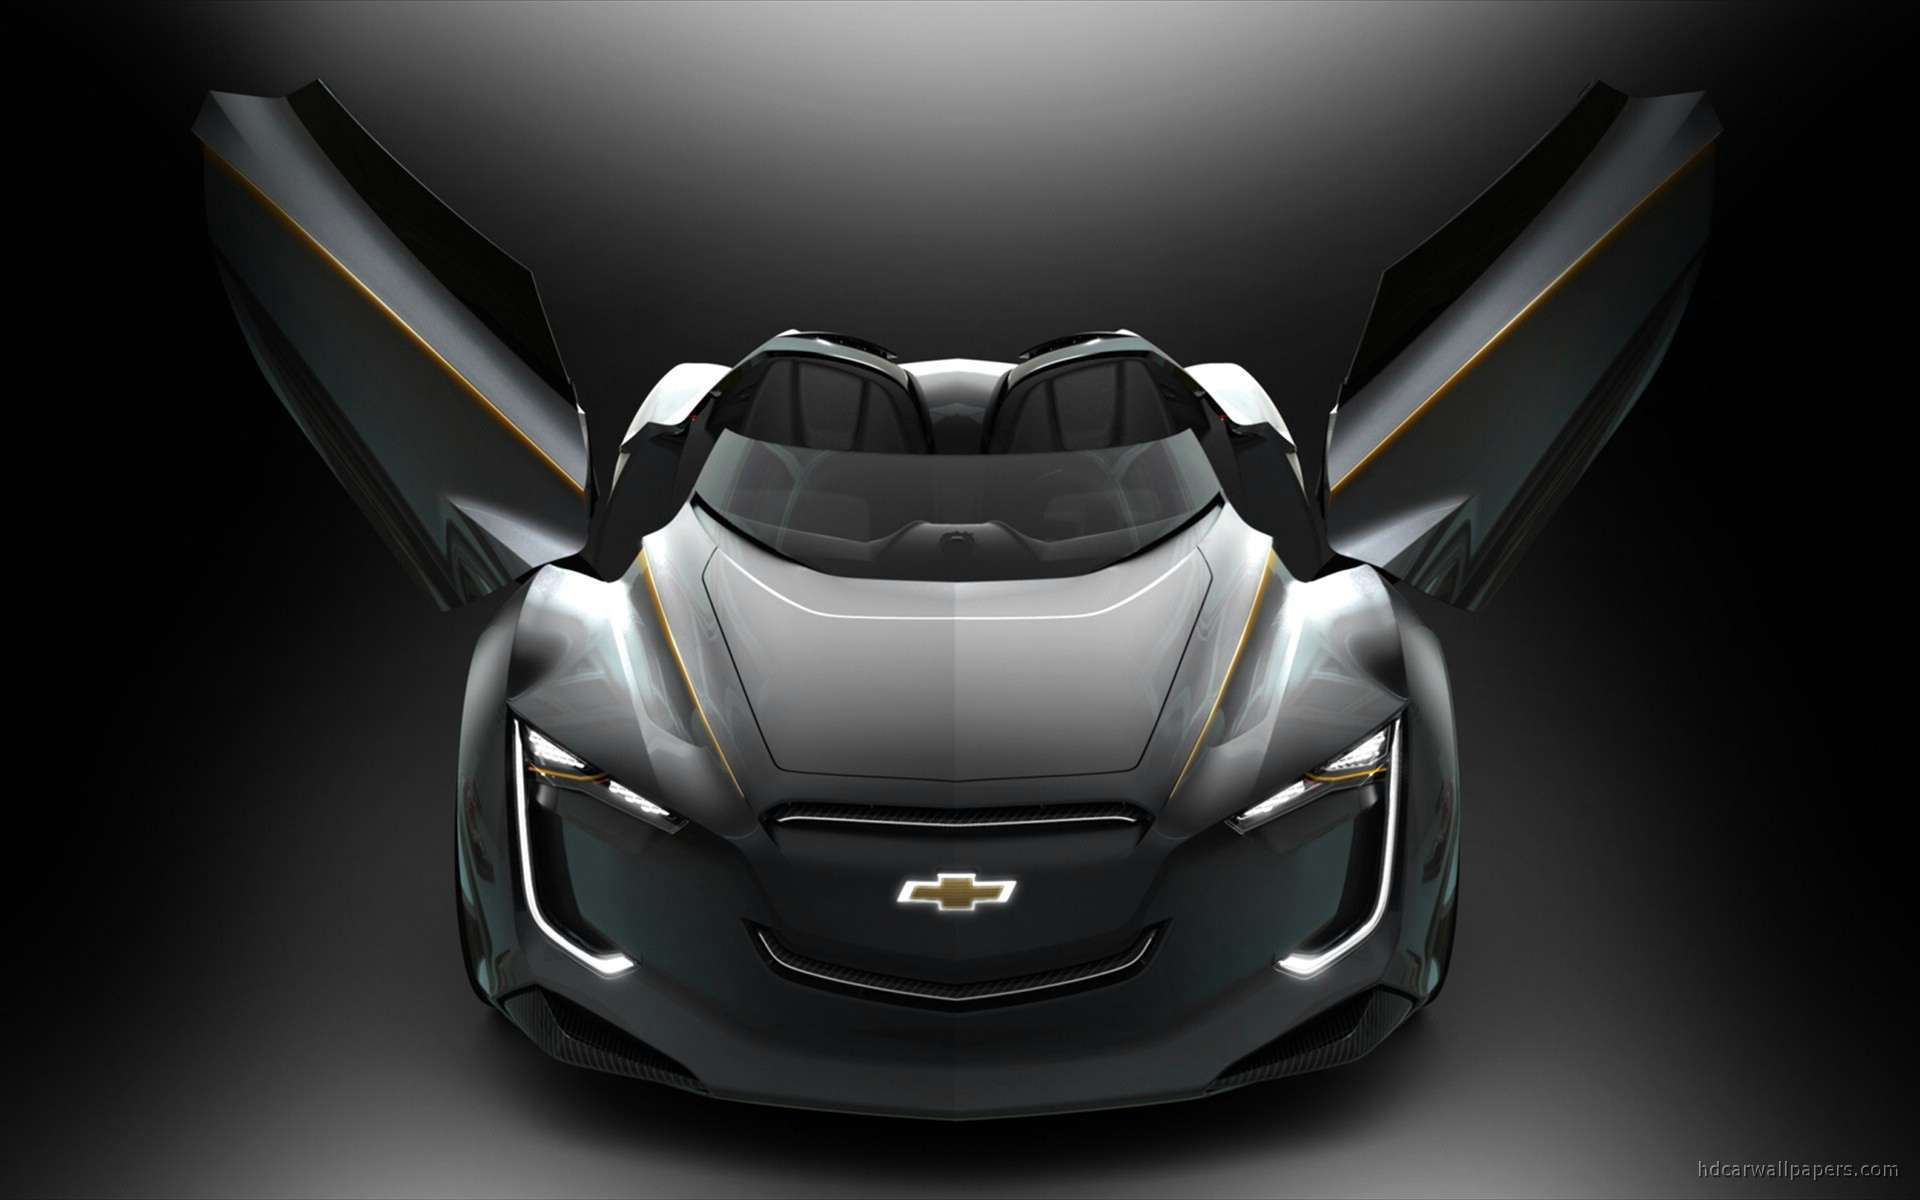 2011 Chevrolet Mi Ray Roadster Concept 3 Hd Wallpapers